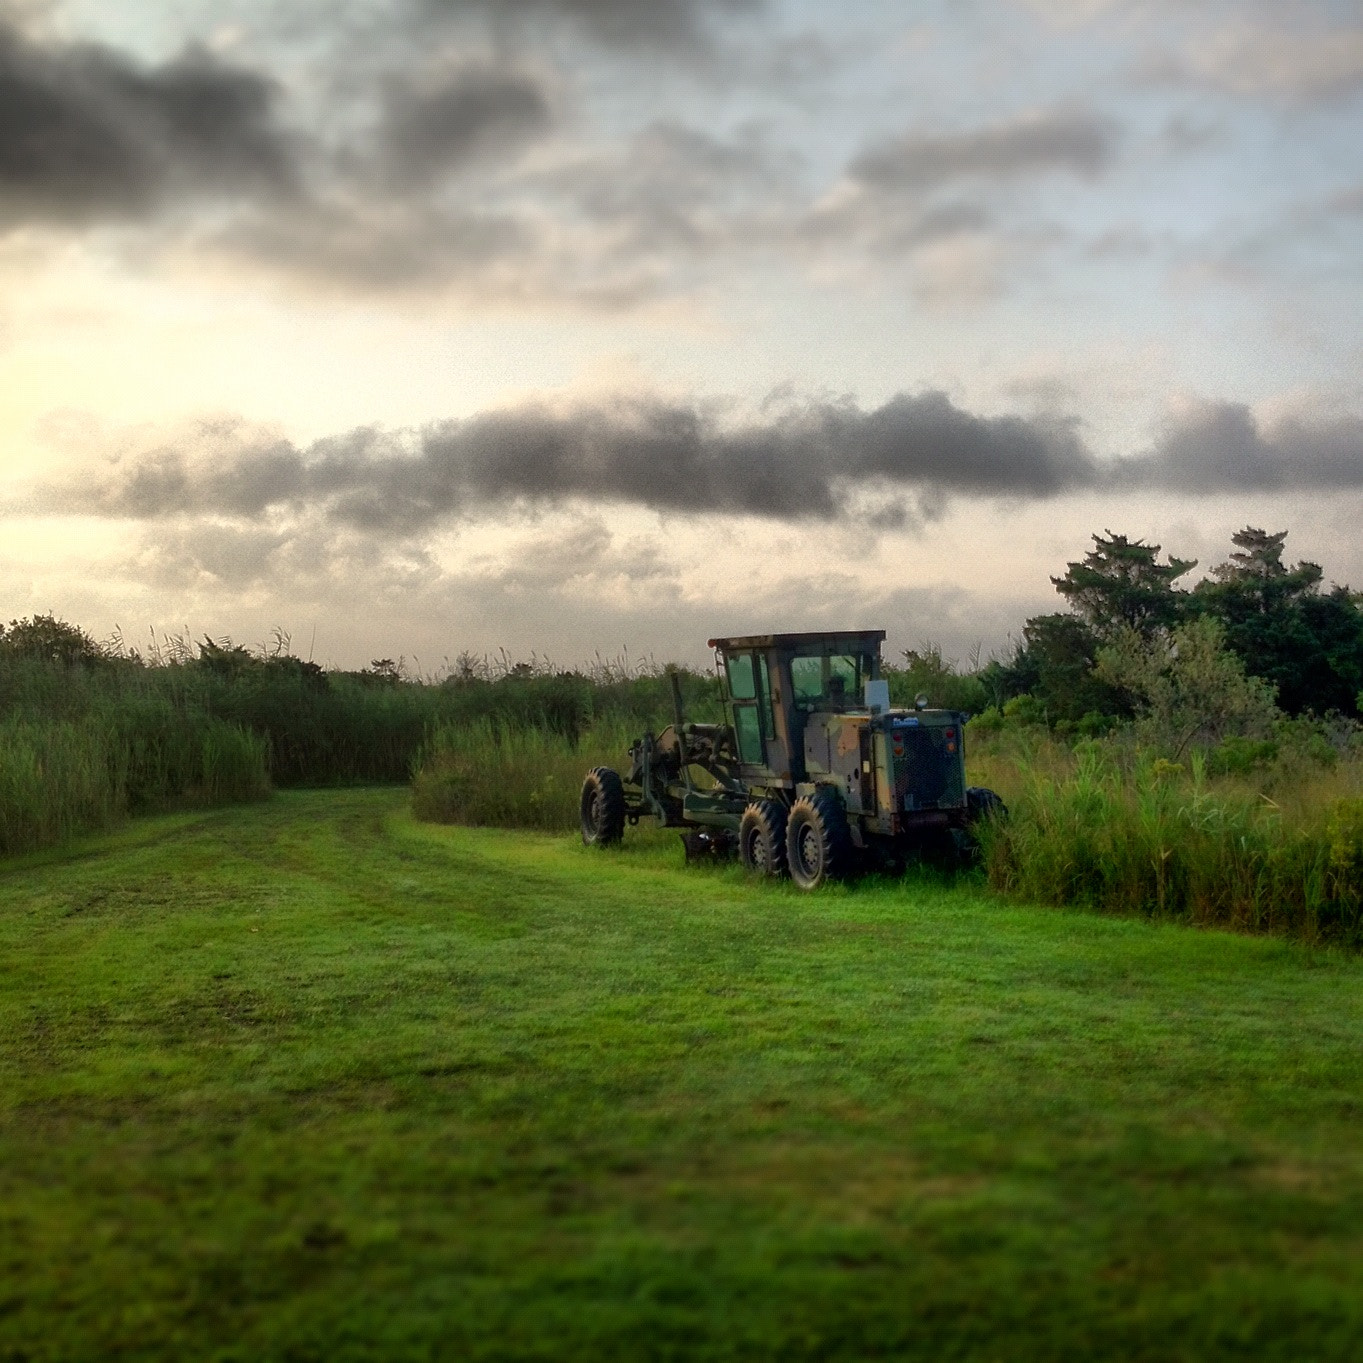 Photograph Fire Island Tractor by Vicki Jauron on 500px